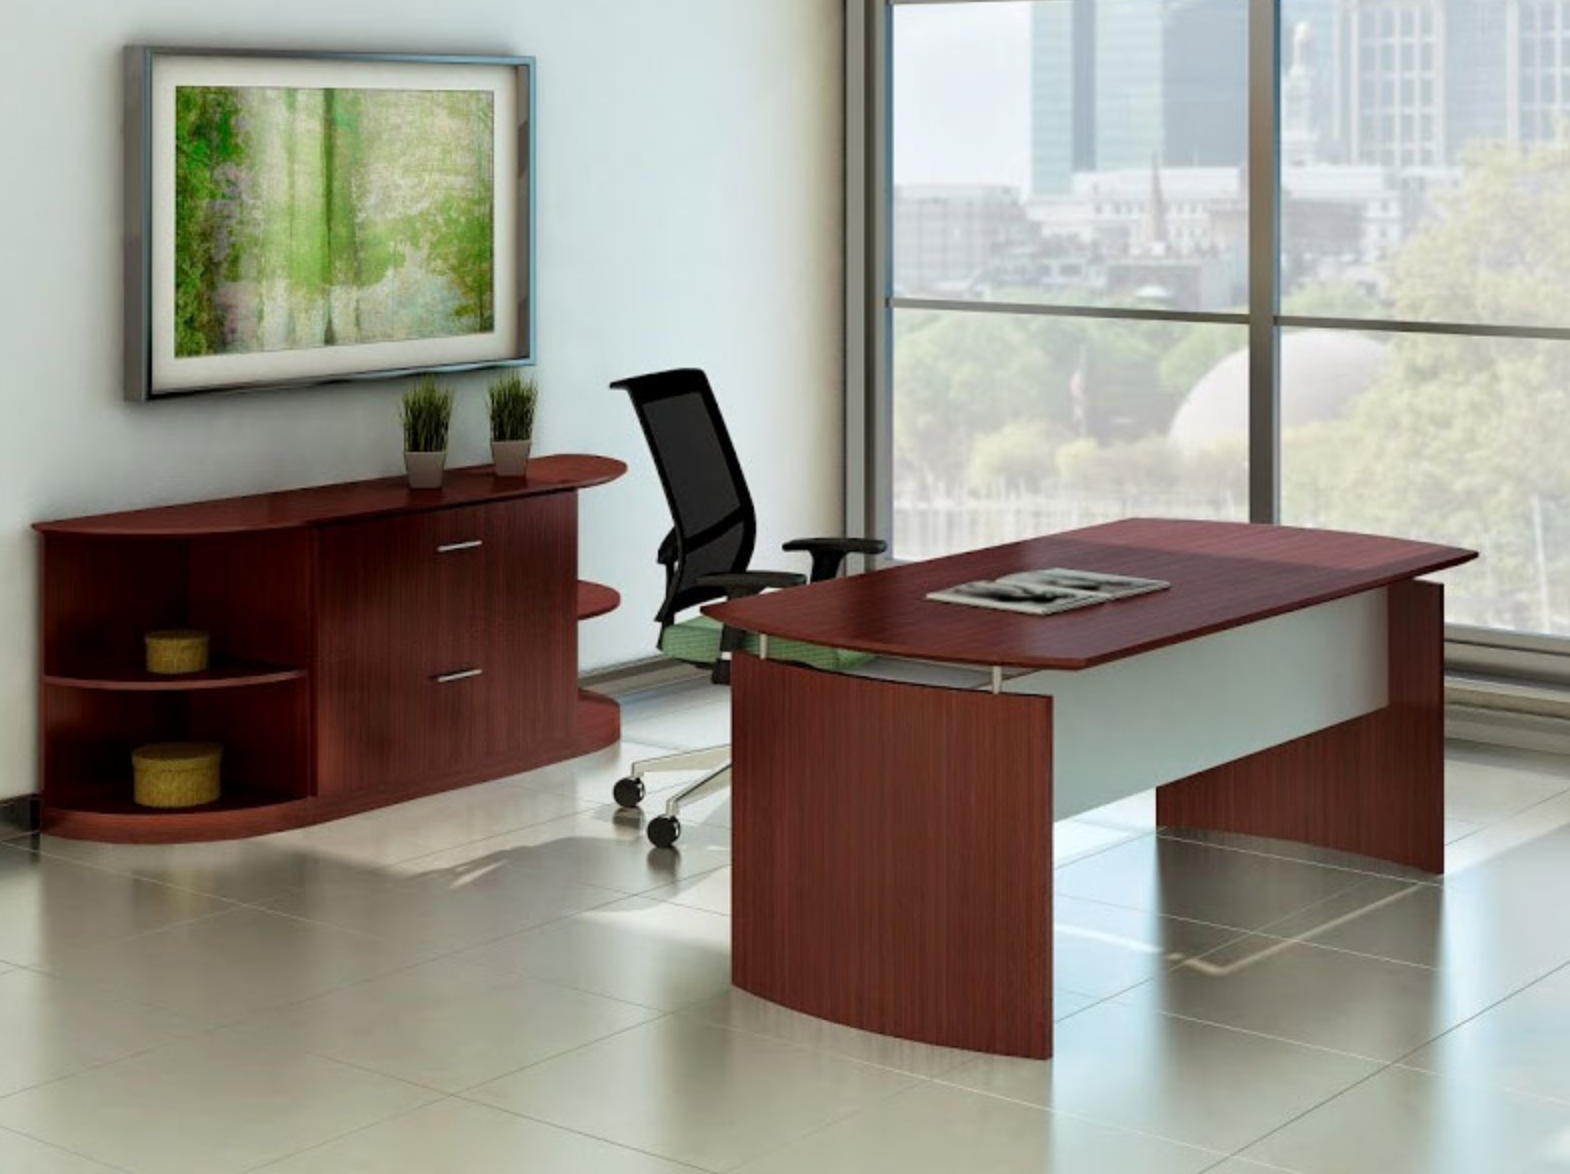 One Of The Greatest Aspects About The Medina Series Is Itu0027s Affordability.  In Fact, Many Of Their Single Office Desks Cost Far Less Than Most Office  Chairs!